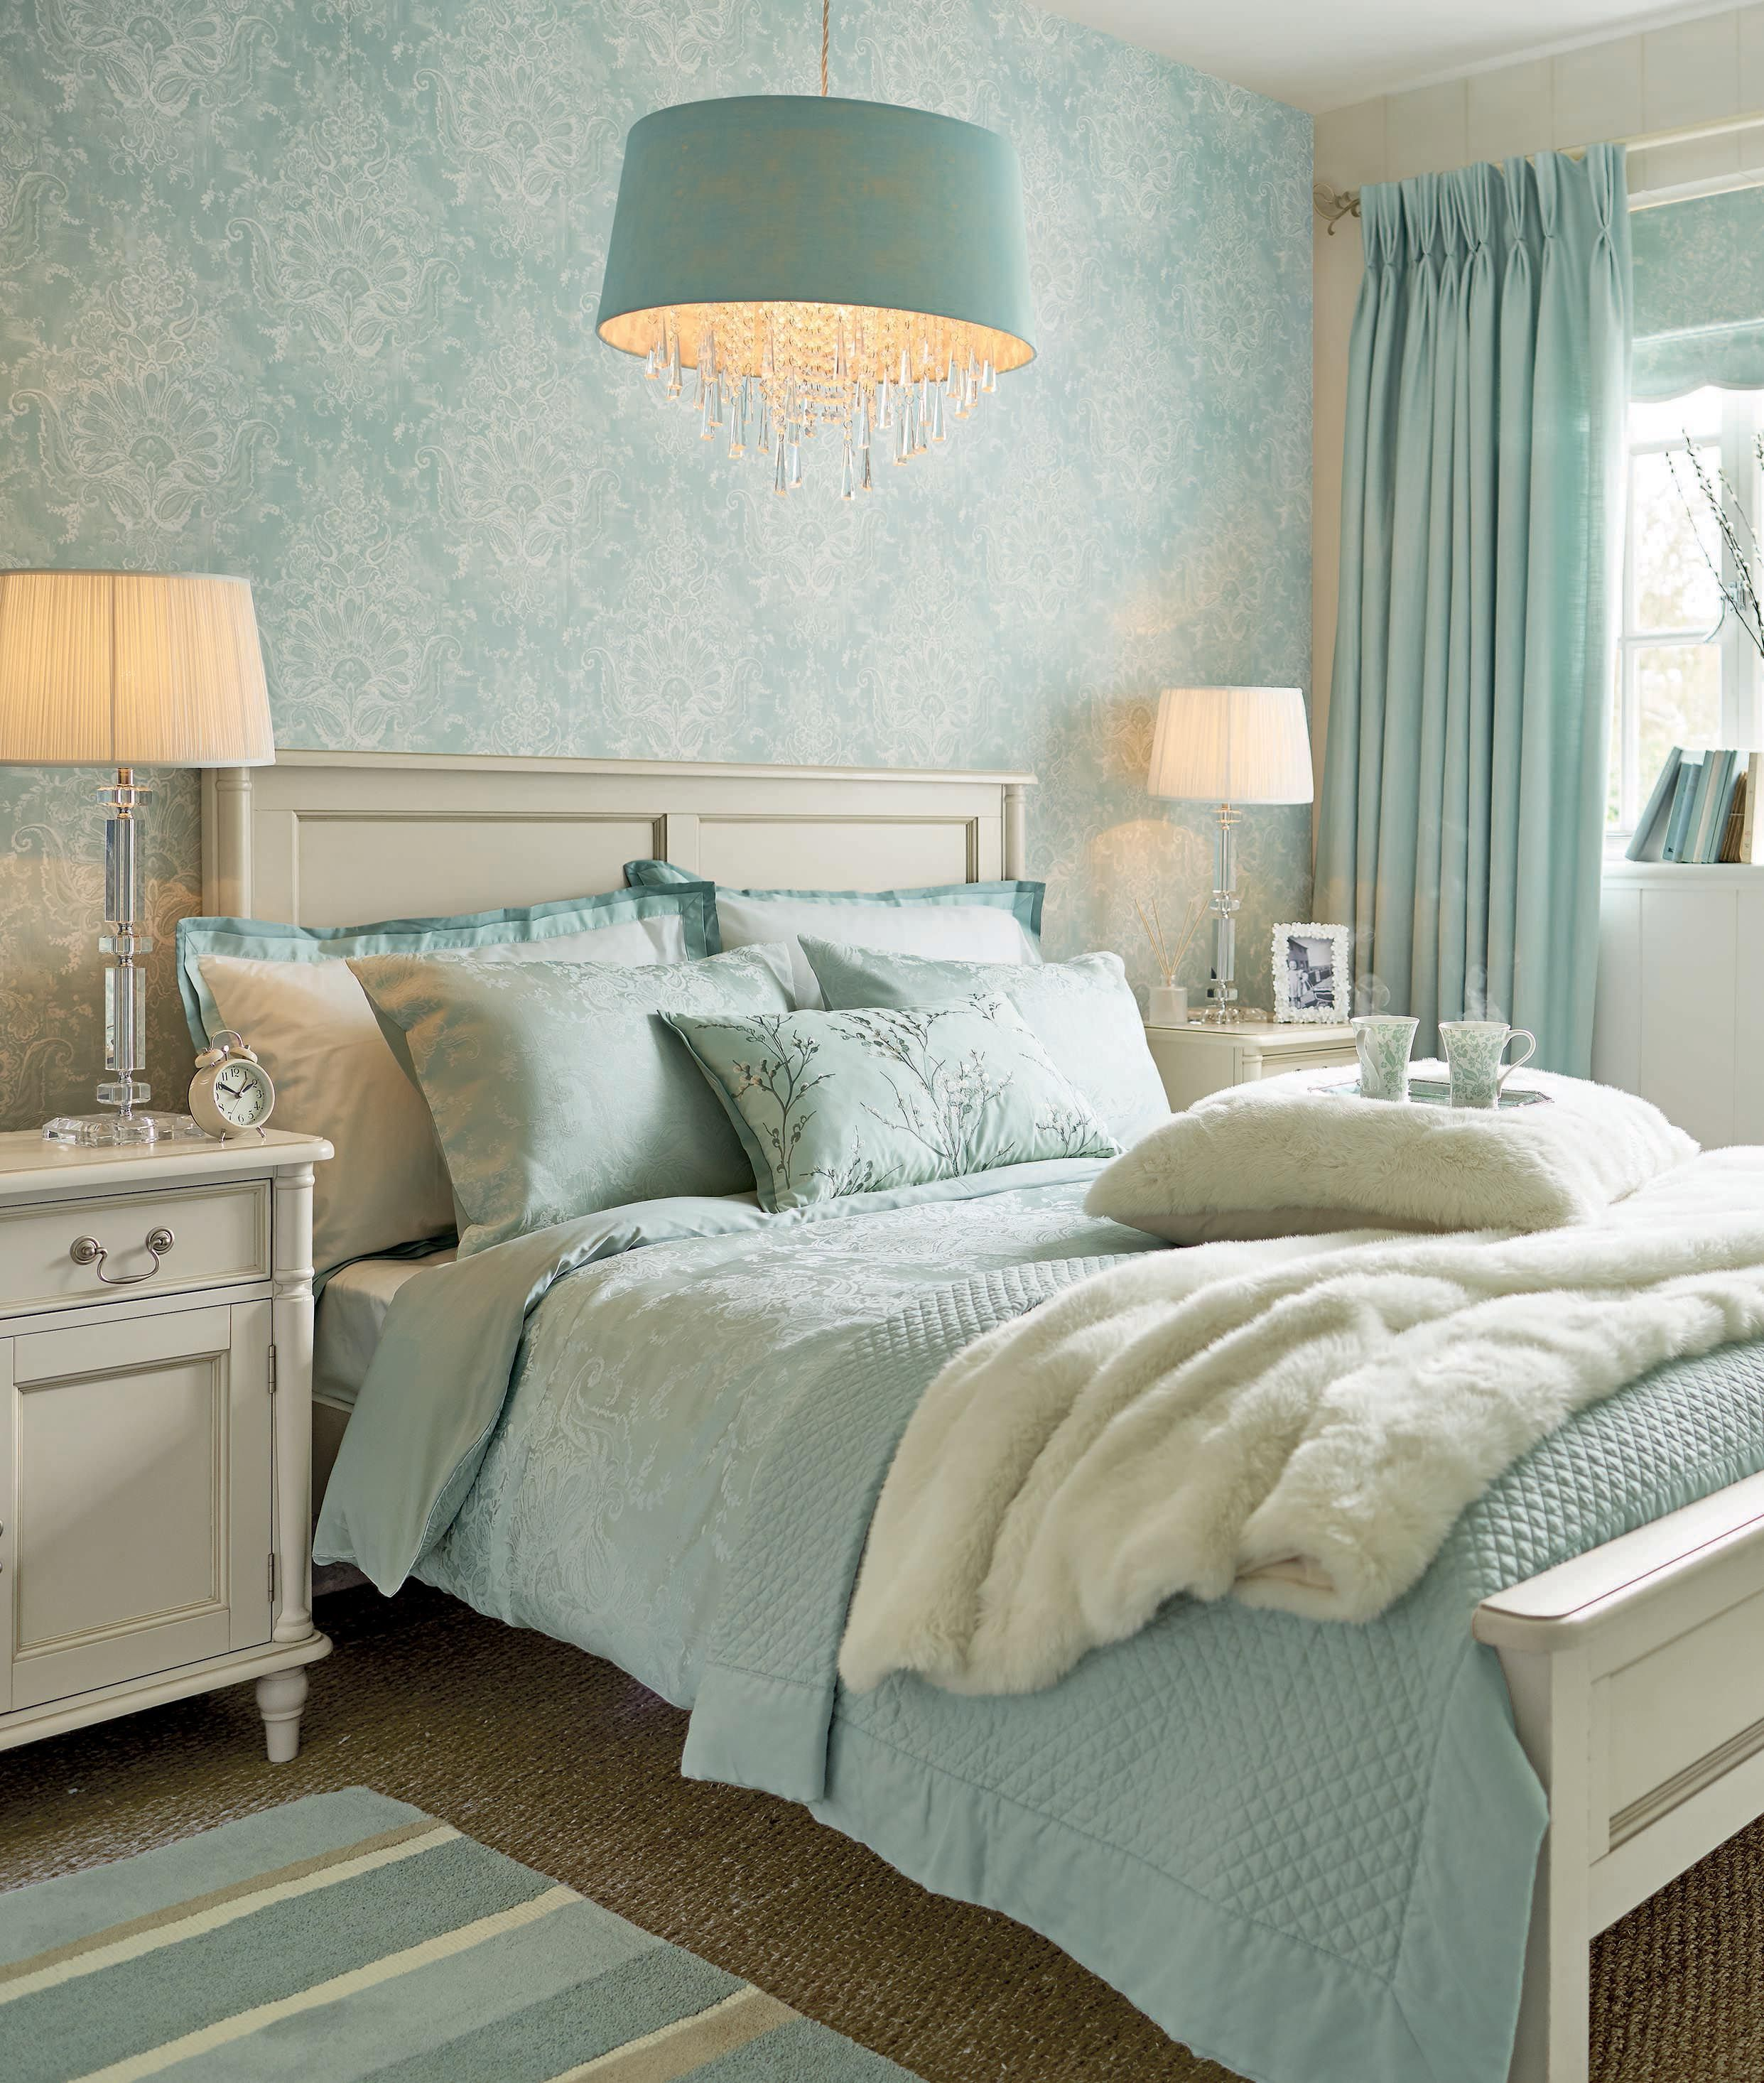 Interior Of Bedroom Wall Duck Egg Blue Bedroom Pictures Bedroom With Single Bed Bedroom Curtains Uk